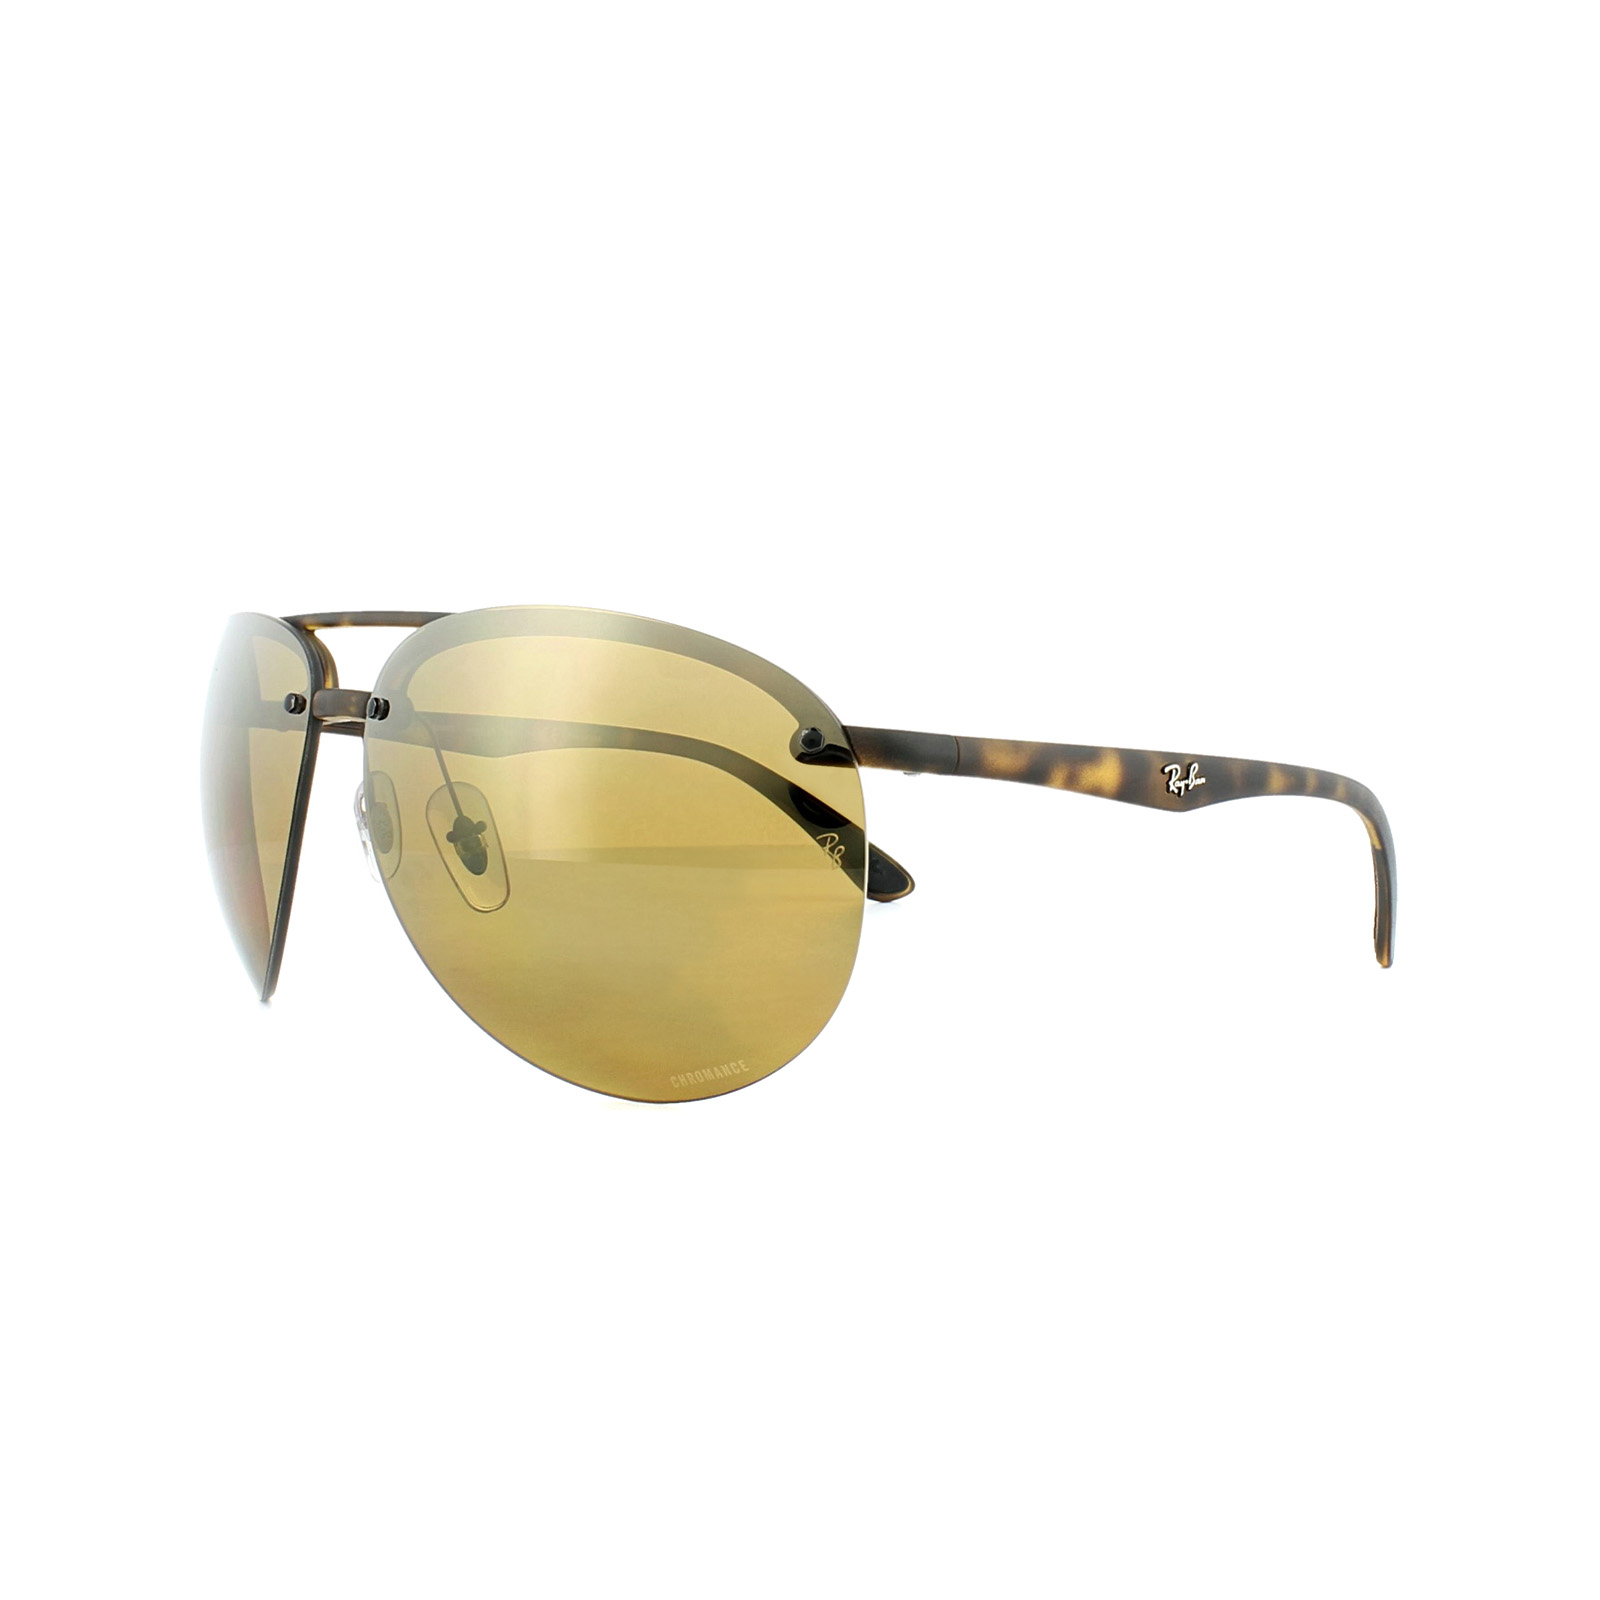 49a368f490 Details about Ray-Ban Sunglasses 4293CH 894 A3 Tortoise Polarized Bronze  Mirror Chromance